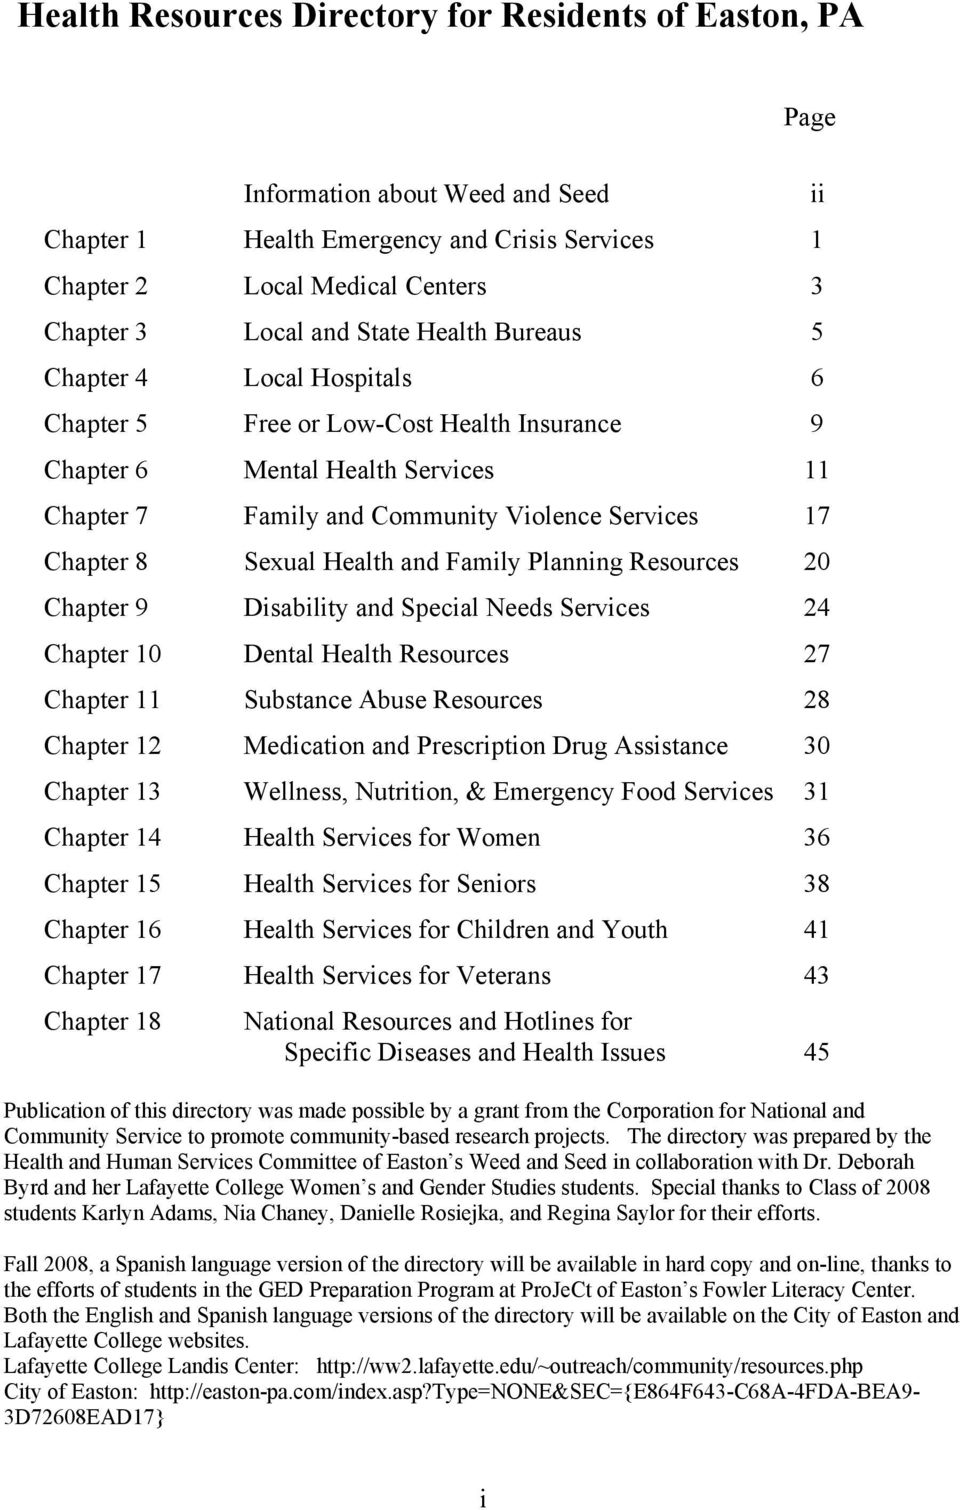 Sexual Health and Family Planning Resources 20 Chapter 9 Disability and Special Needs Services 24 Chapter 10 Dental Health Resources 27 Chapter 11 Substance Abuse Resources 28 Chapter 12 Medication